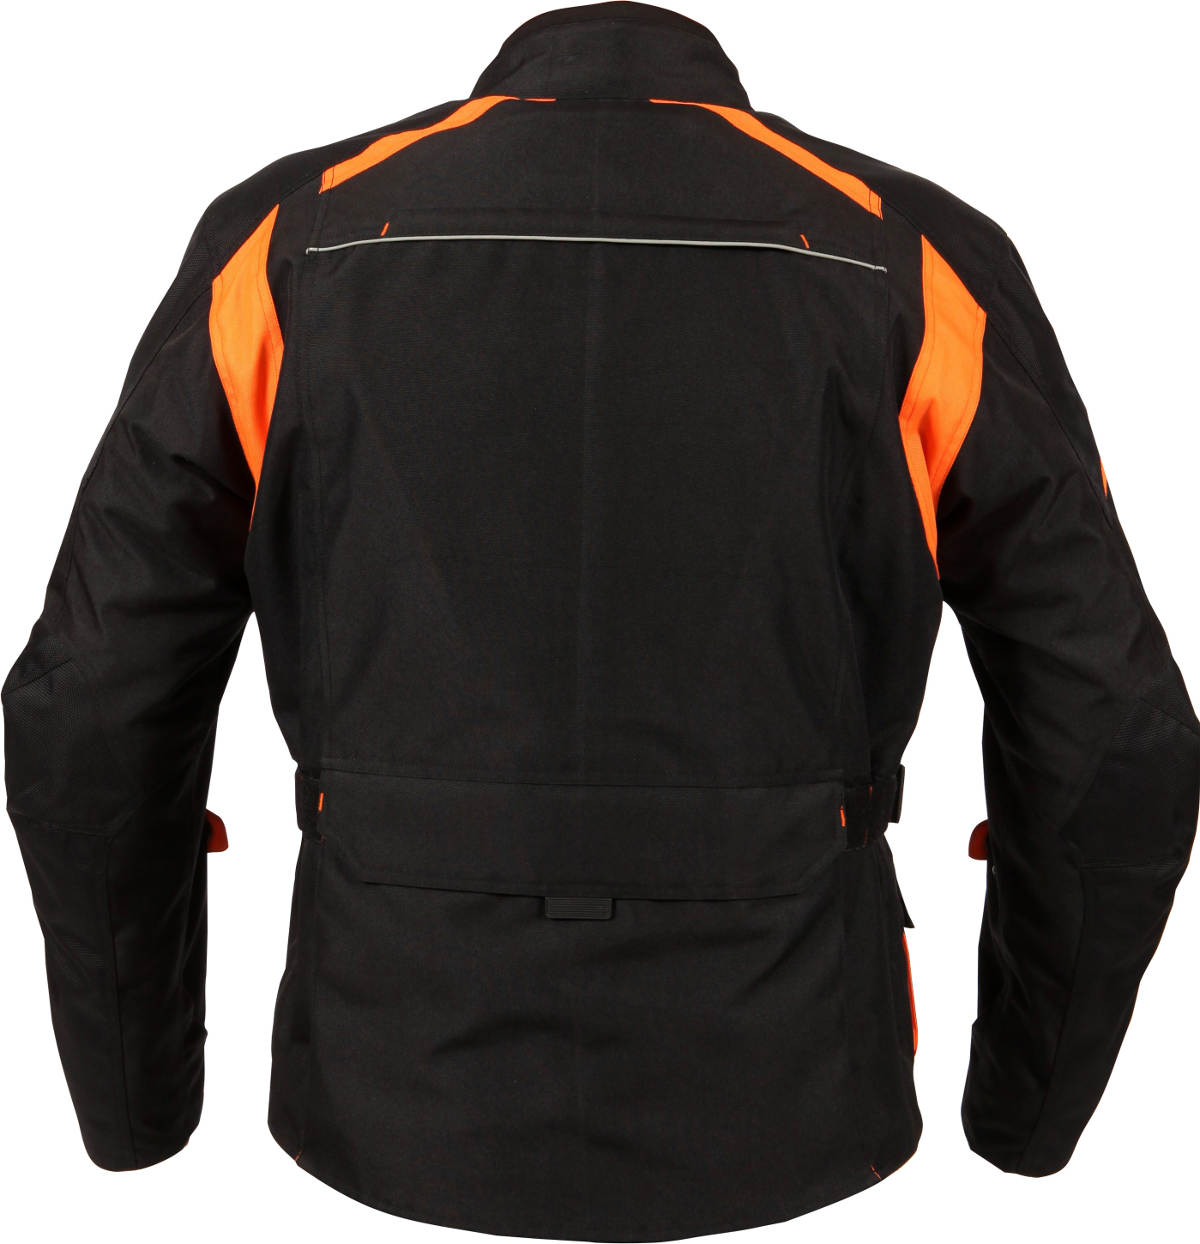 Weise Pioneer Textile Jacket Black Orange Back